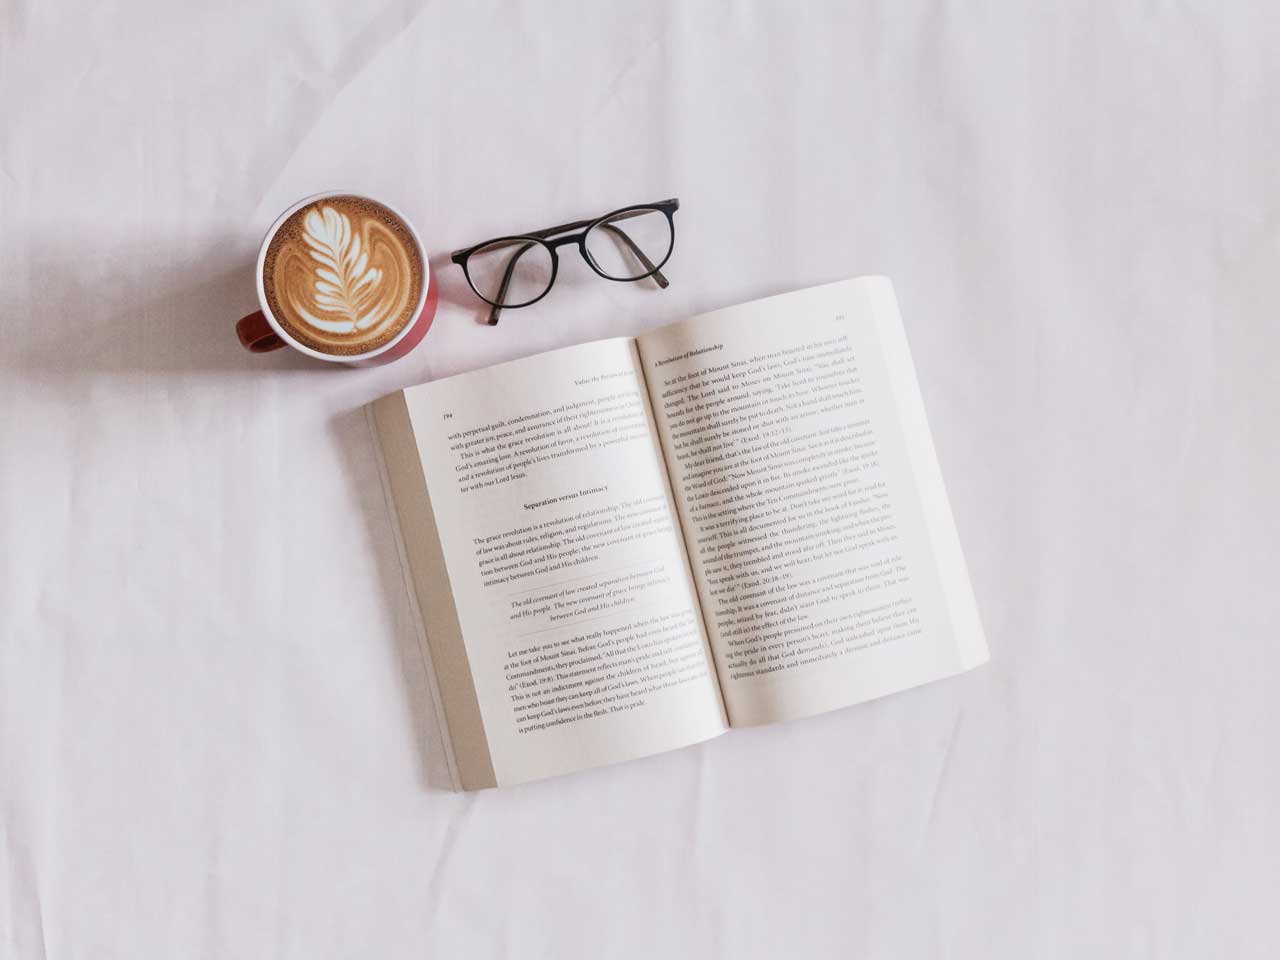 Book, glasses and coffee